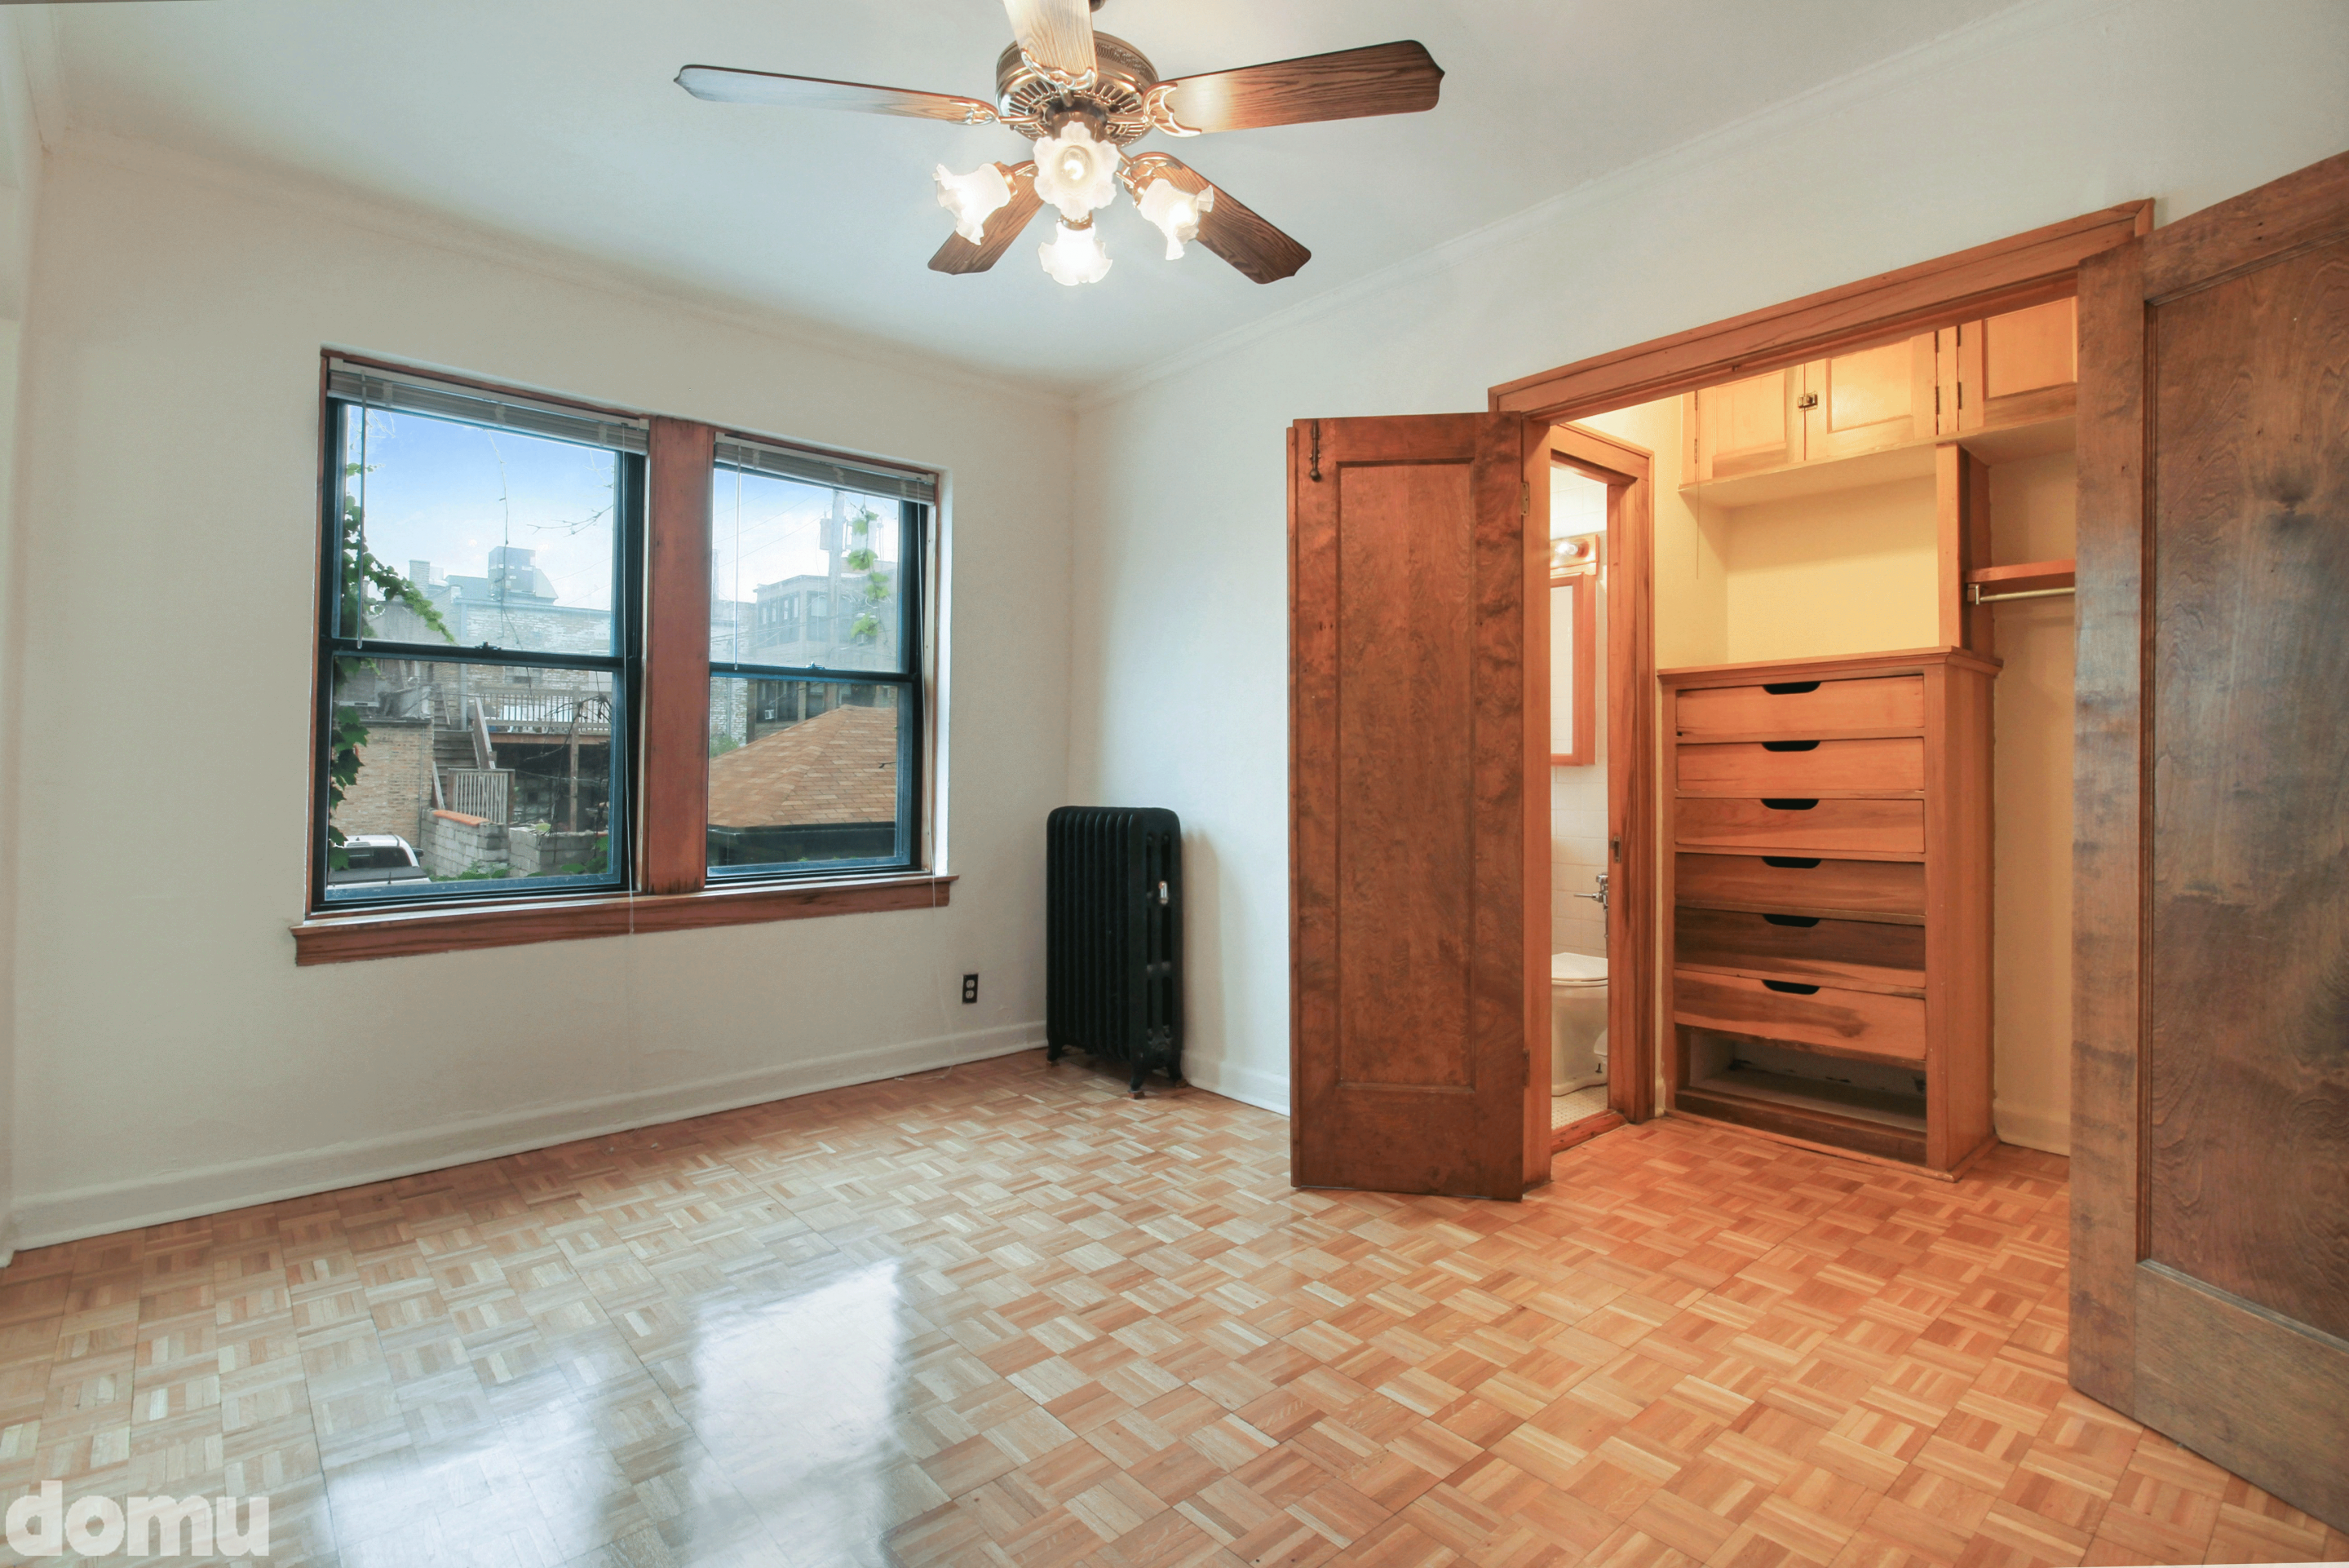 An image of a bedroom with parquet floor and large window. It has a closet with built in shelving and an en suite bathroom.